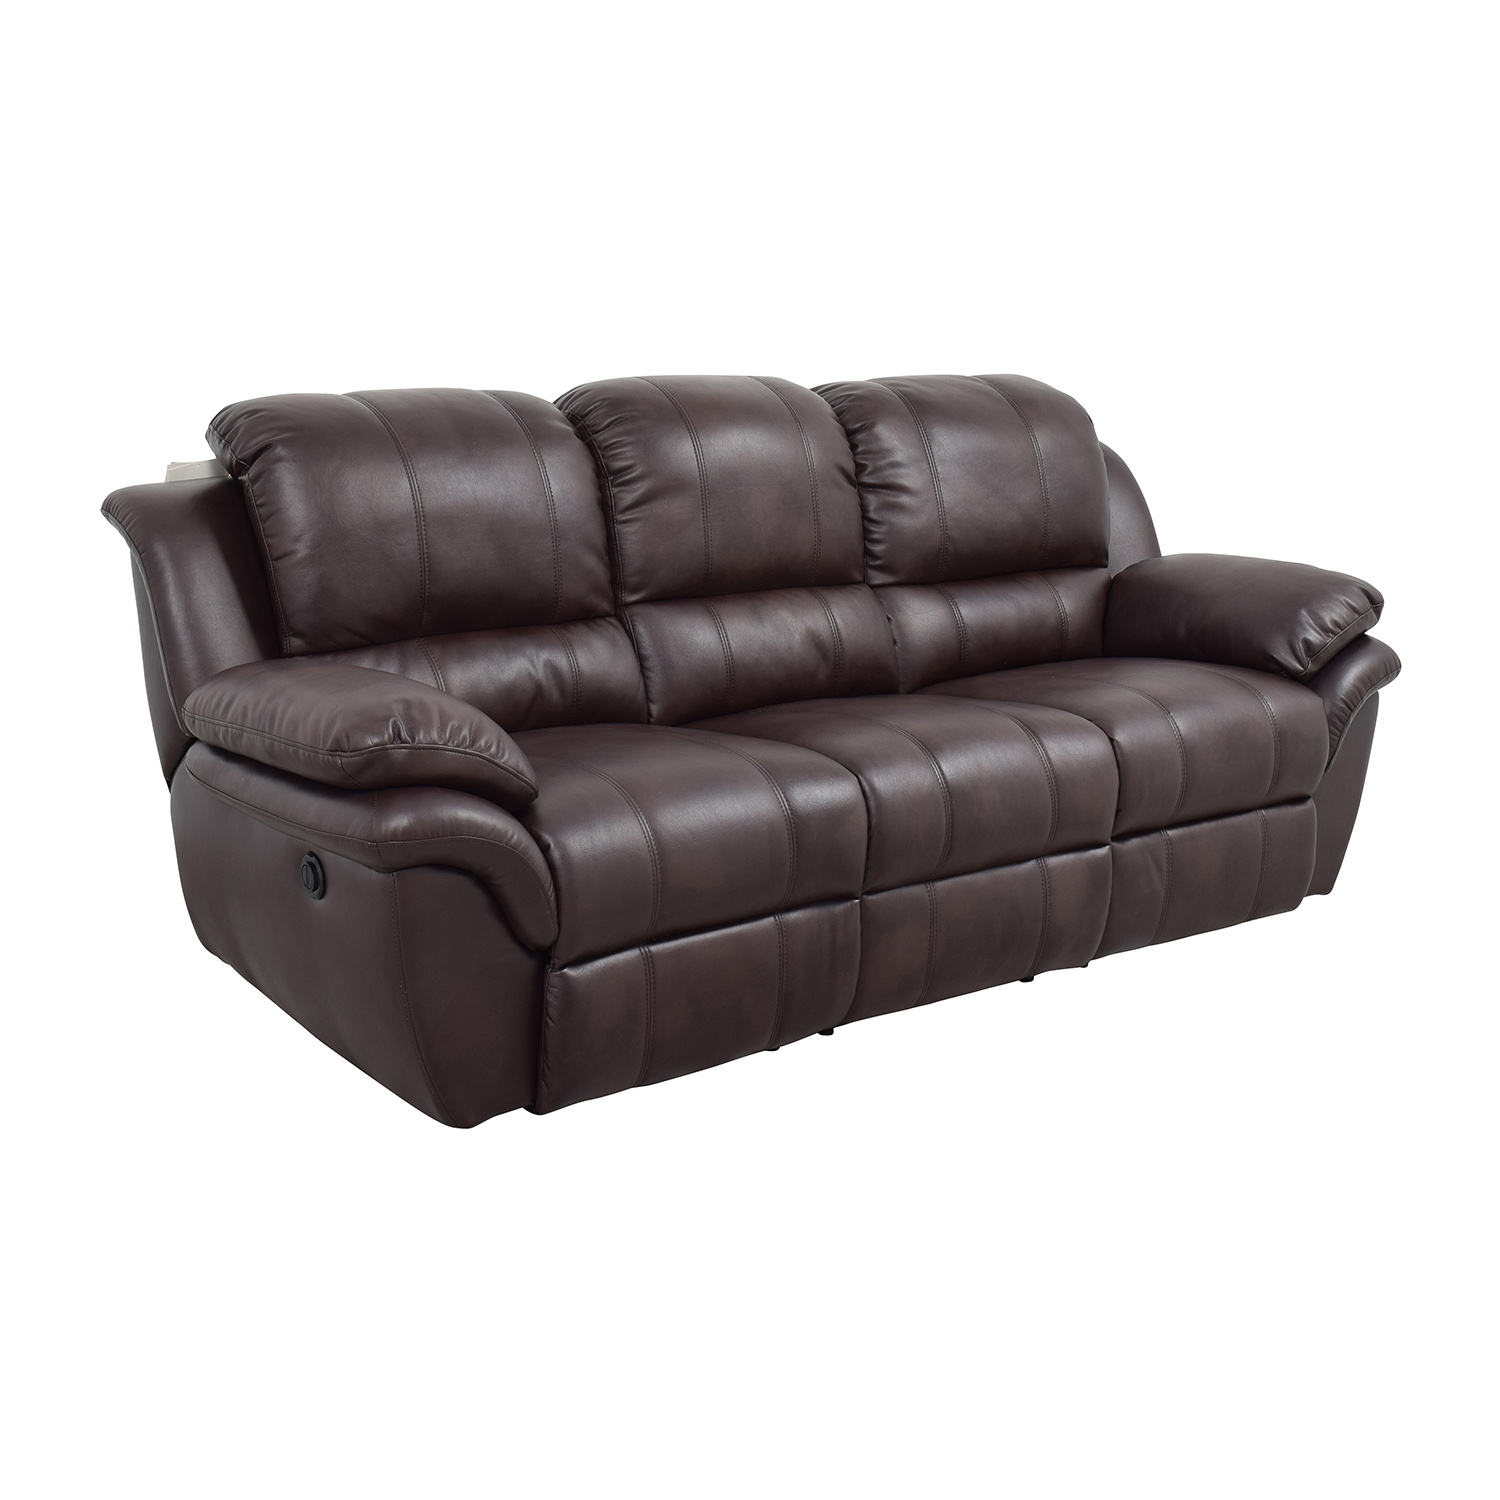 buy New Classic Home Furnishing Leather Reclining Brown Couch New Classic Home Furnishing Classic Sofas